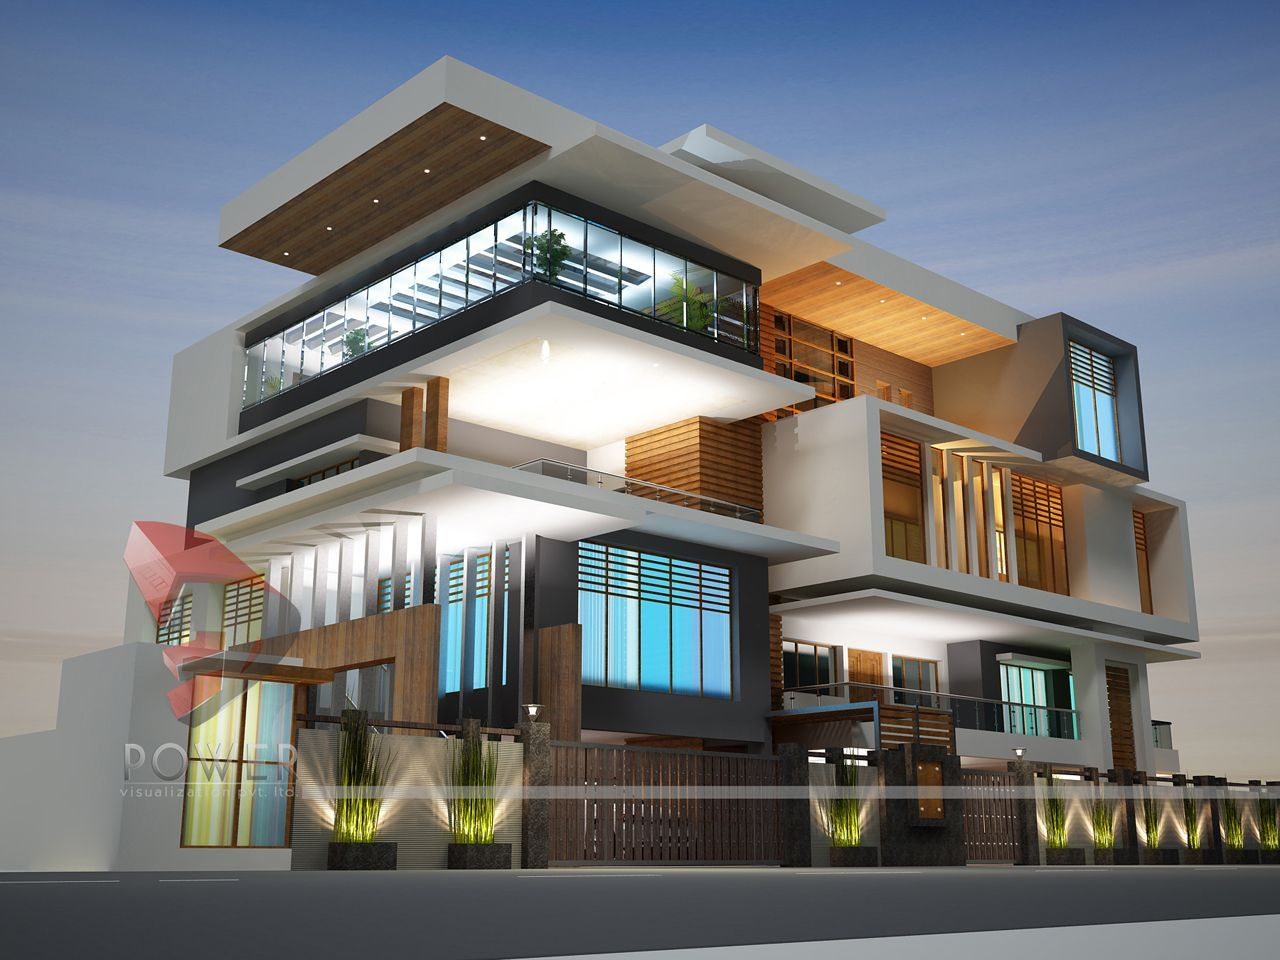 Modern house design in india architecture india modern for Small house design in kolkata